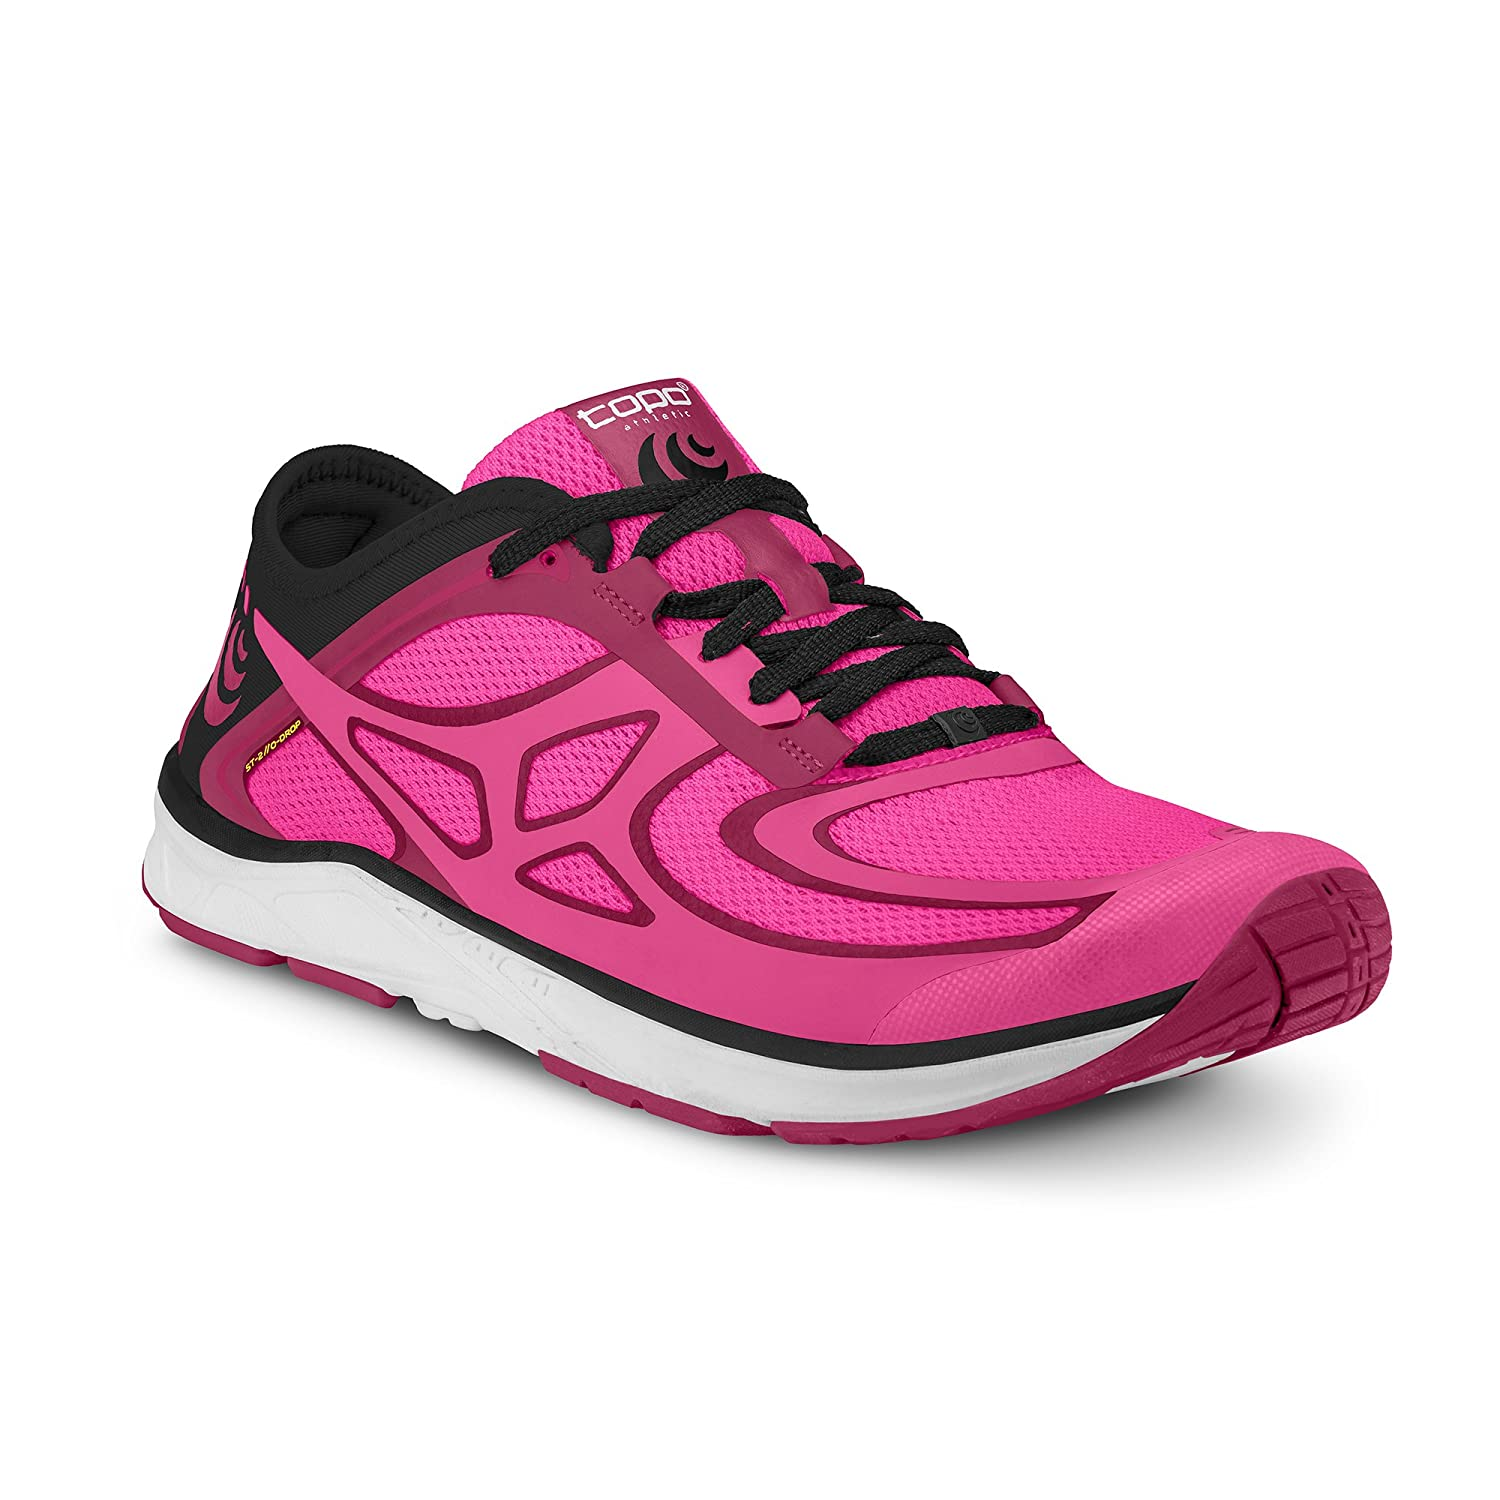 Topo Athletic Women's ST-2 Running Shoe B06ZYBGDZH 8.5 B(M) US|Fuchsia/Black